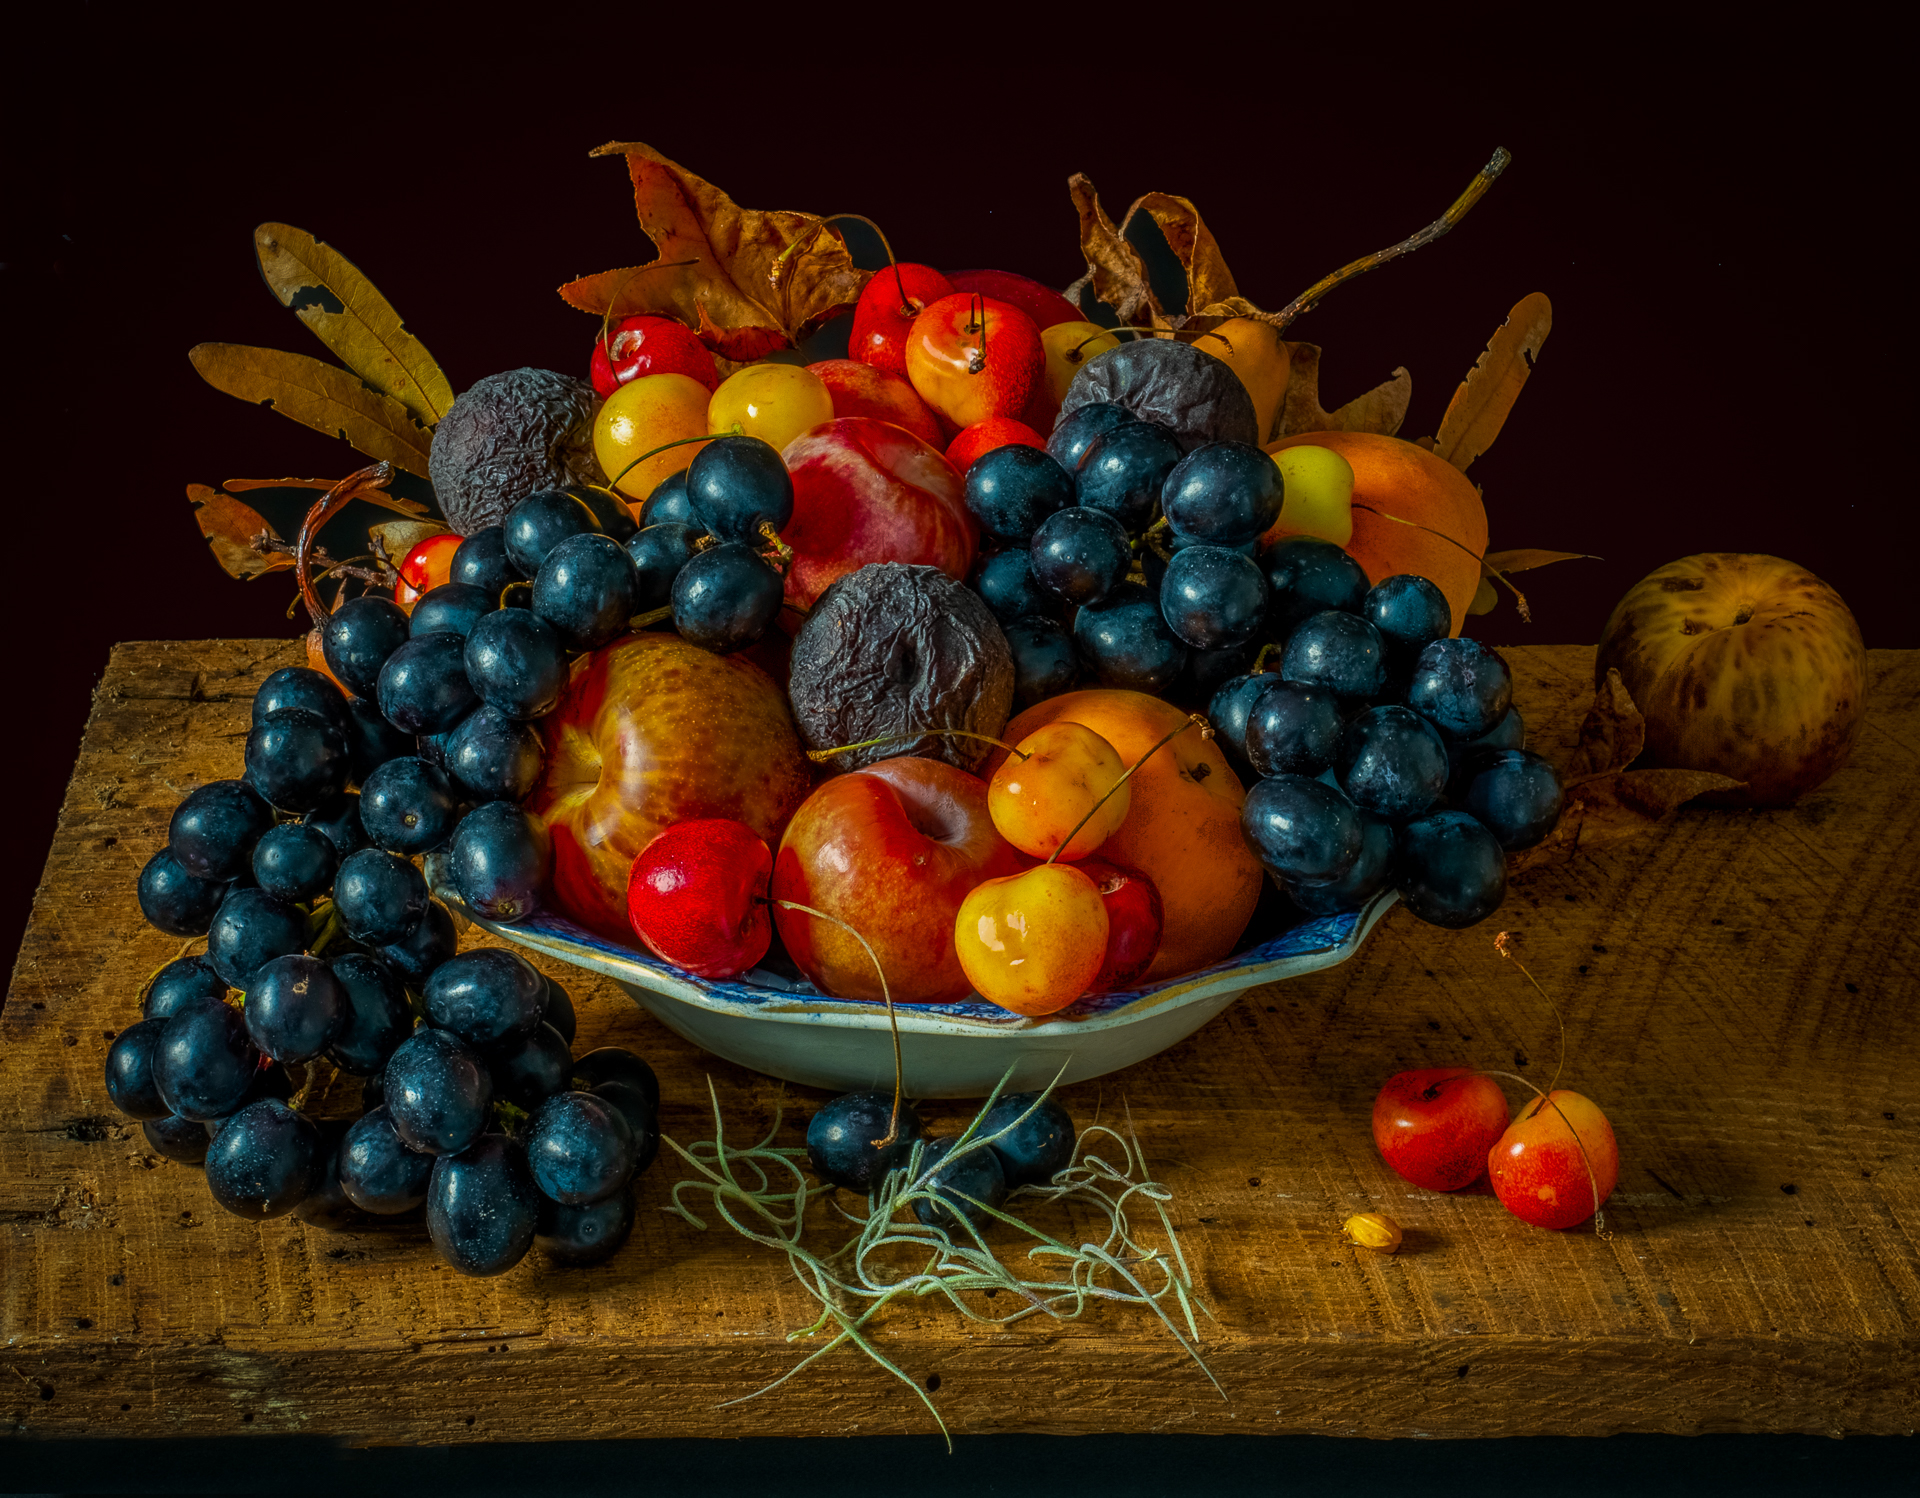 Seasonal Fruit II - Still Life Photography